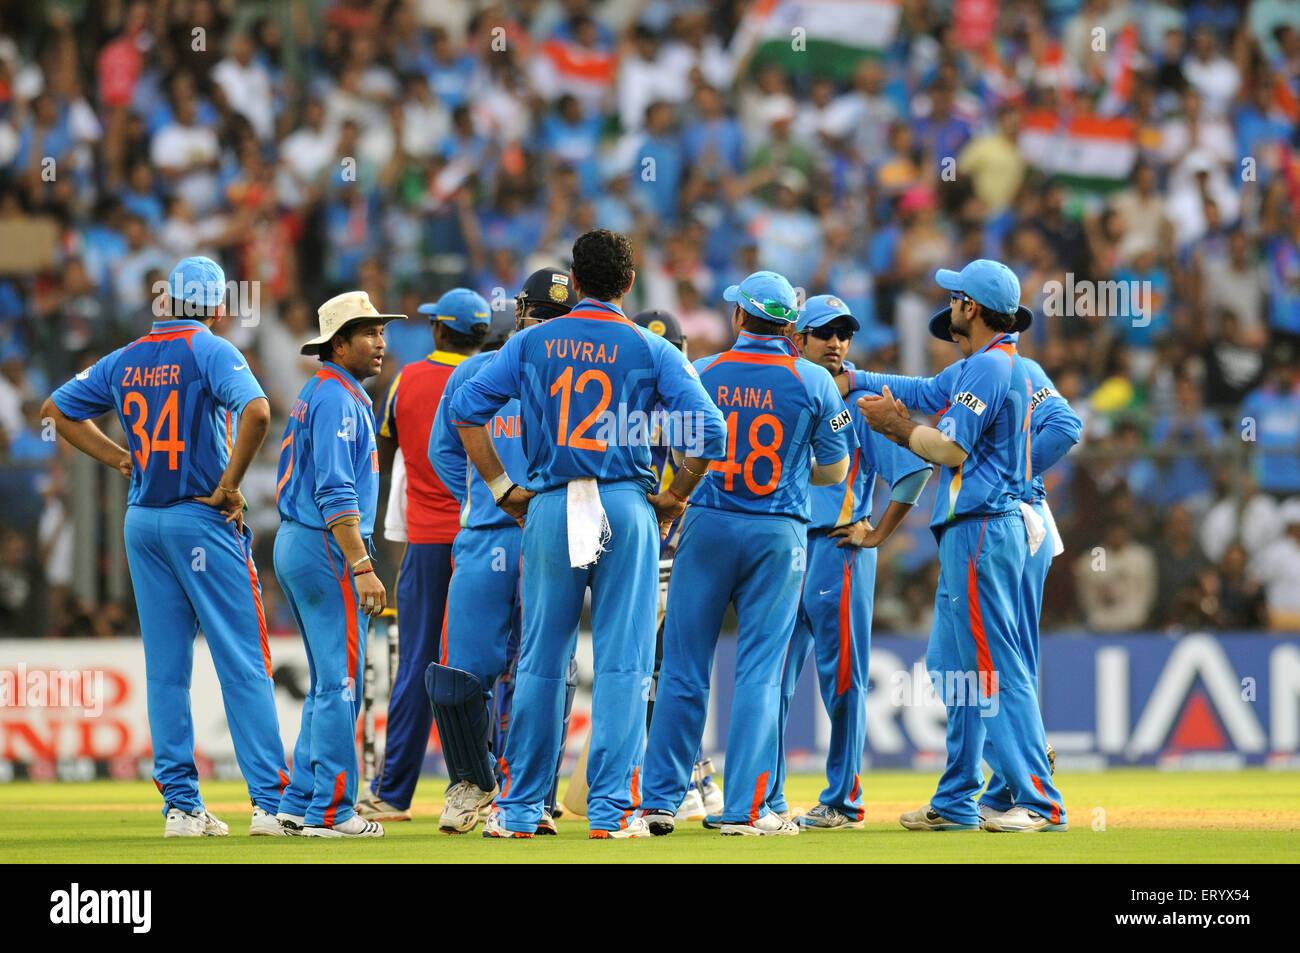 cricket team during ICC Cricket World Cup finals against Sri Lanka being played at the Wankhede stadium in Mumbai - Stock Image